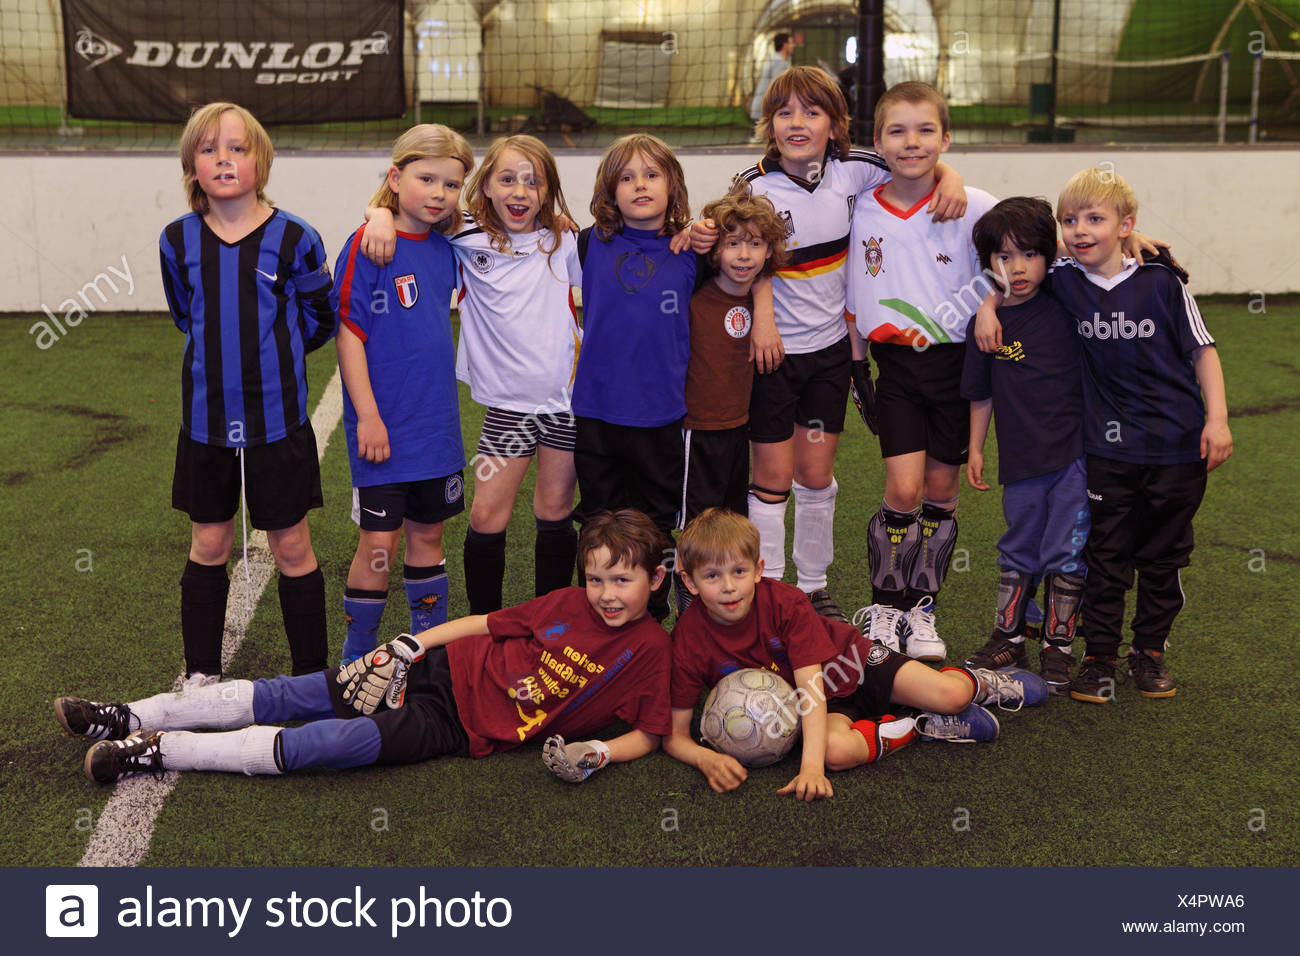 Berlin, Germany, children playing football have lined up for a group photo - Stock Image